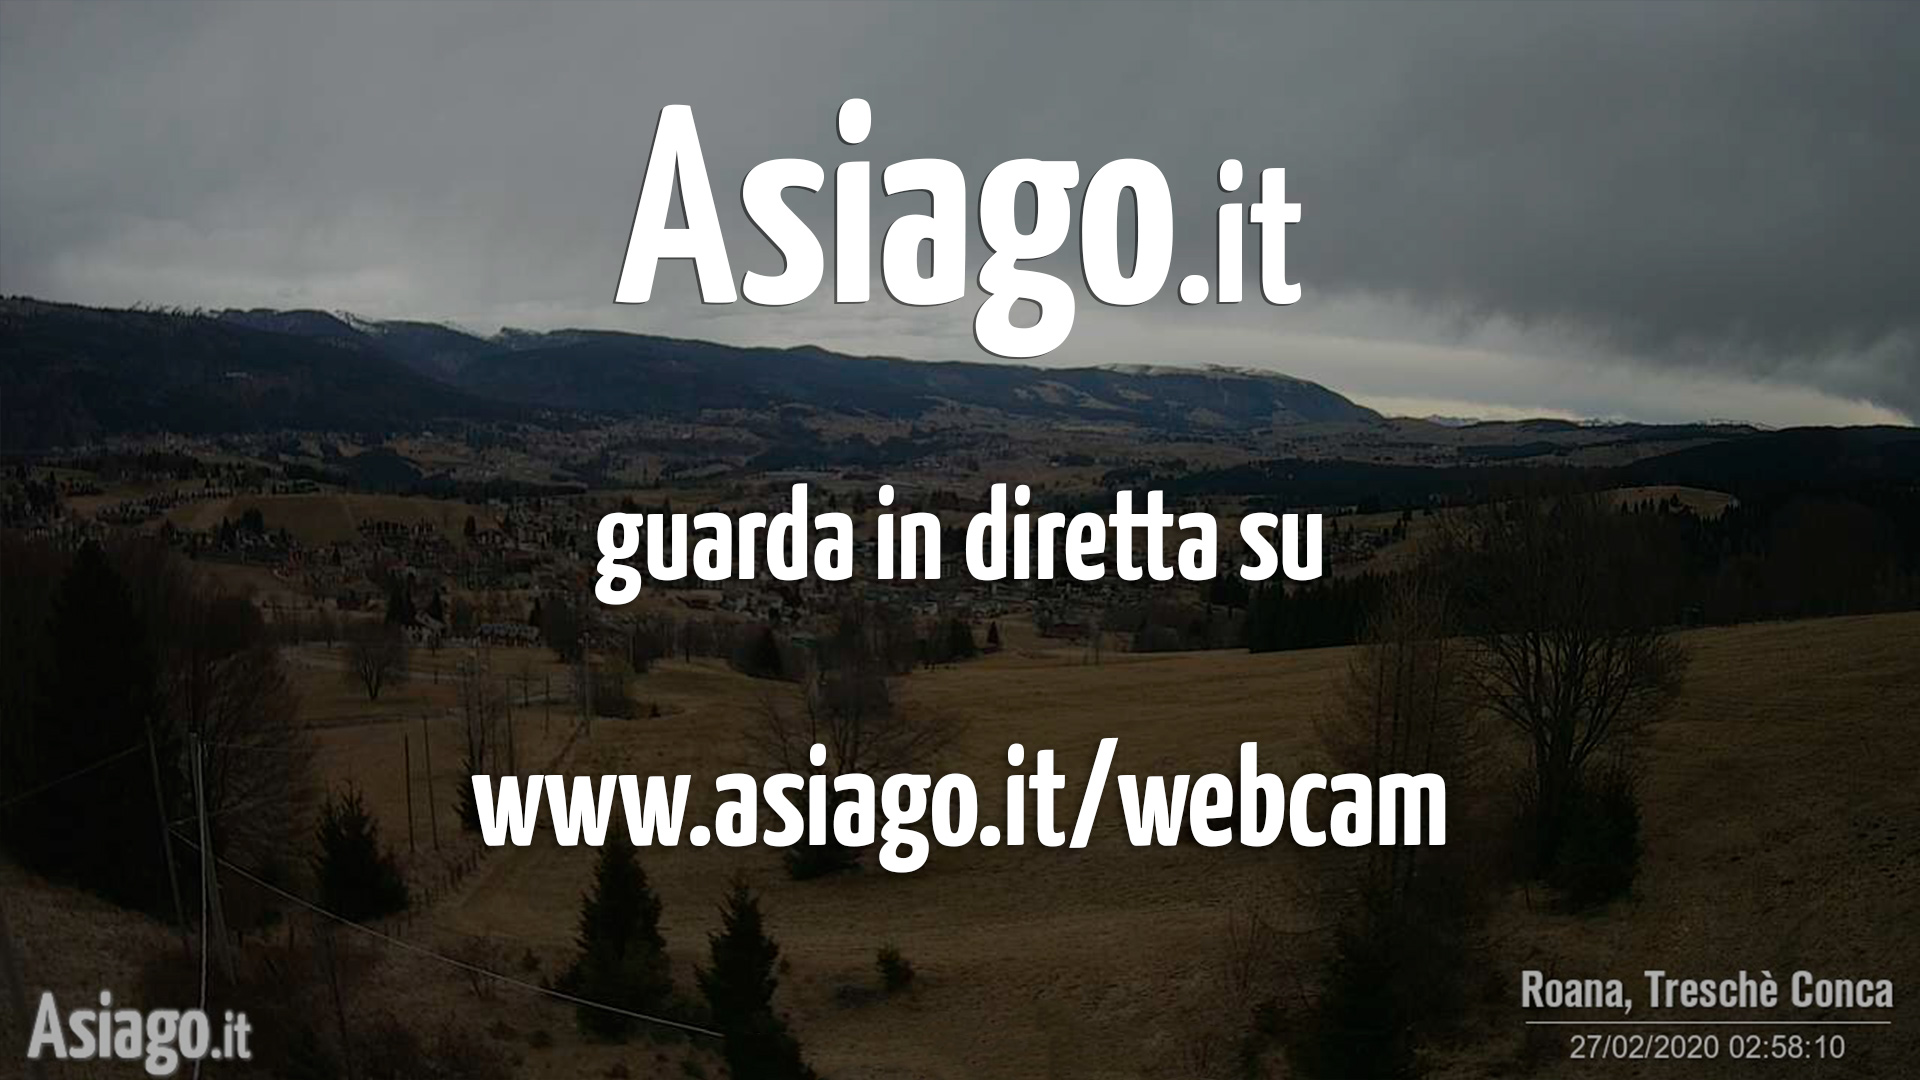 Asiago.It live webcams from La Quinta Restaurant